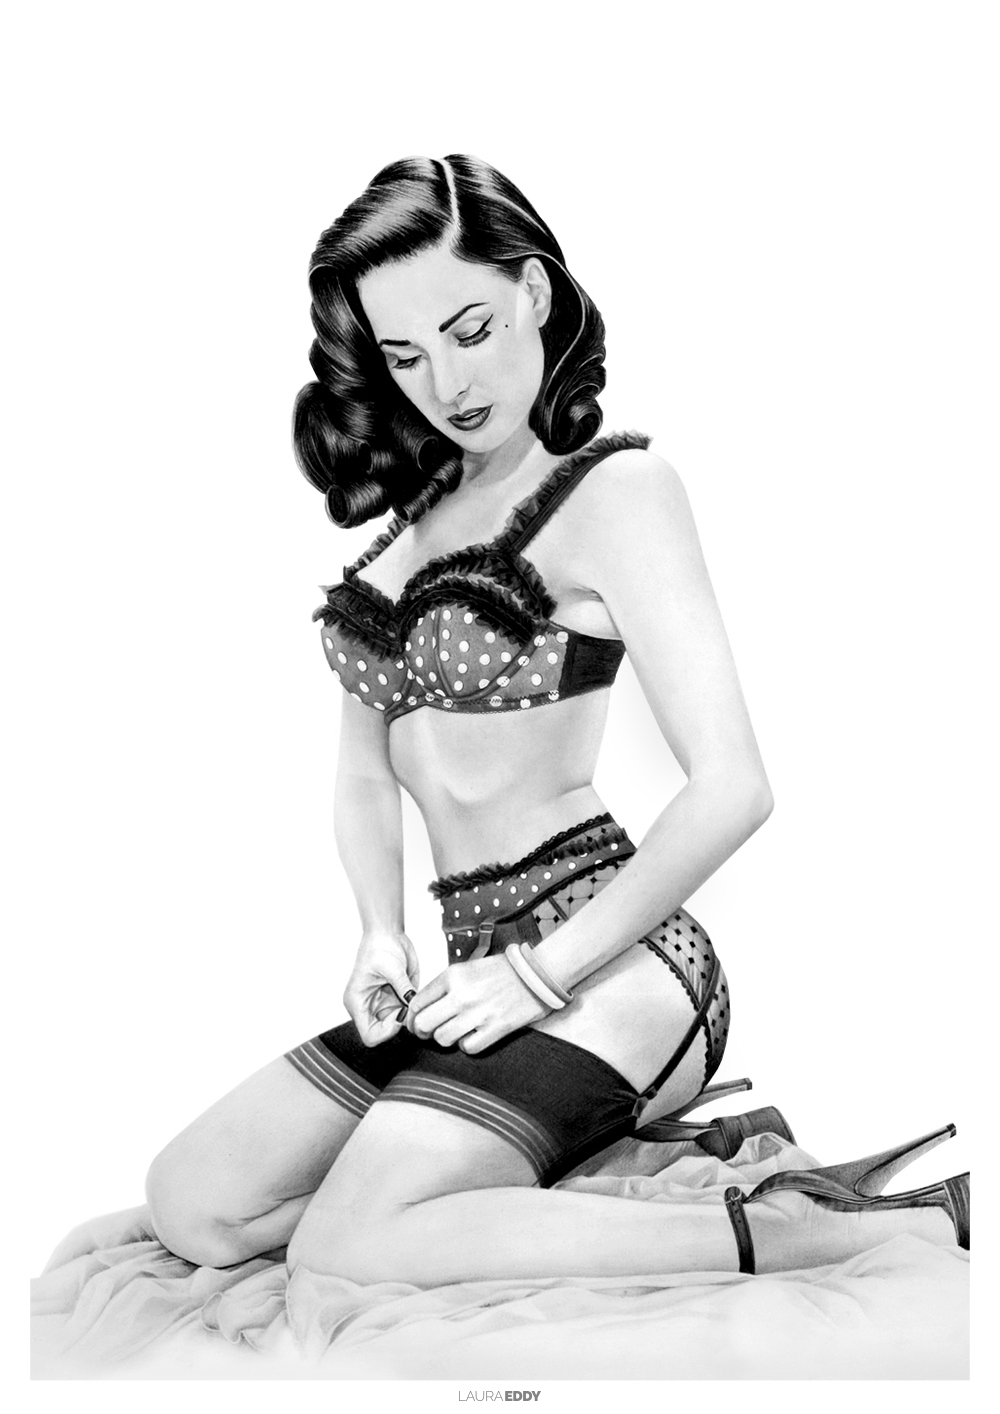 laura-eddy-drawing-dita-von-teese-branded.jpg